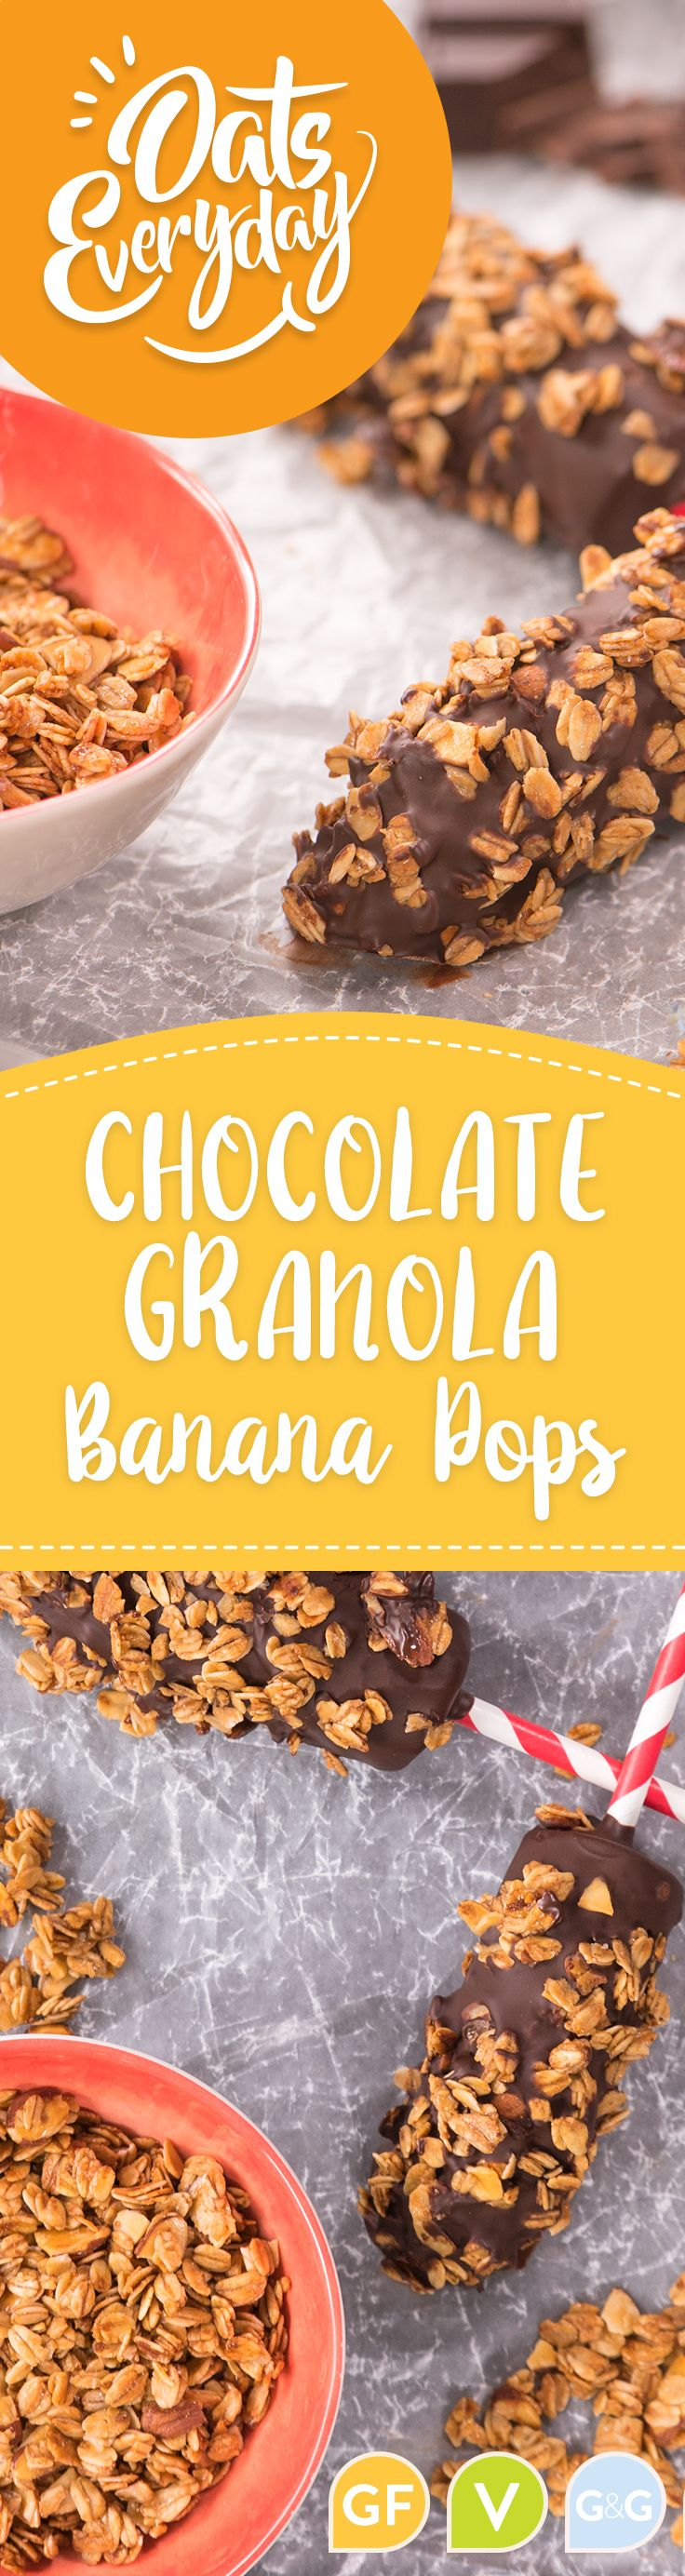 Chocolate-dipped banana pops with crunchy granola.